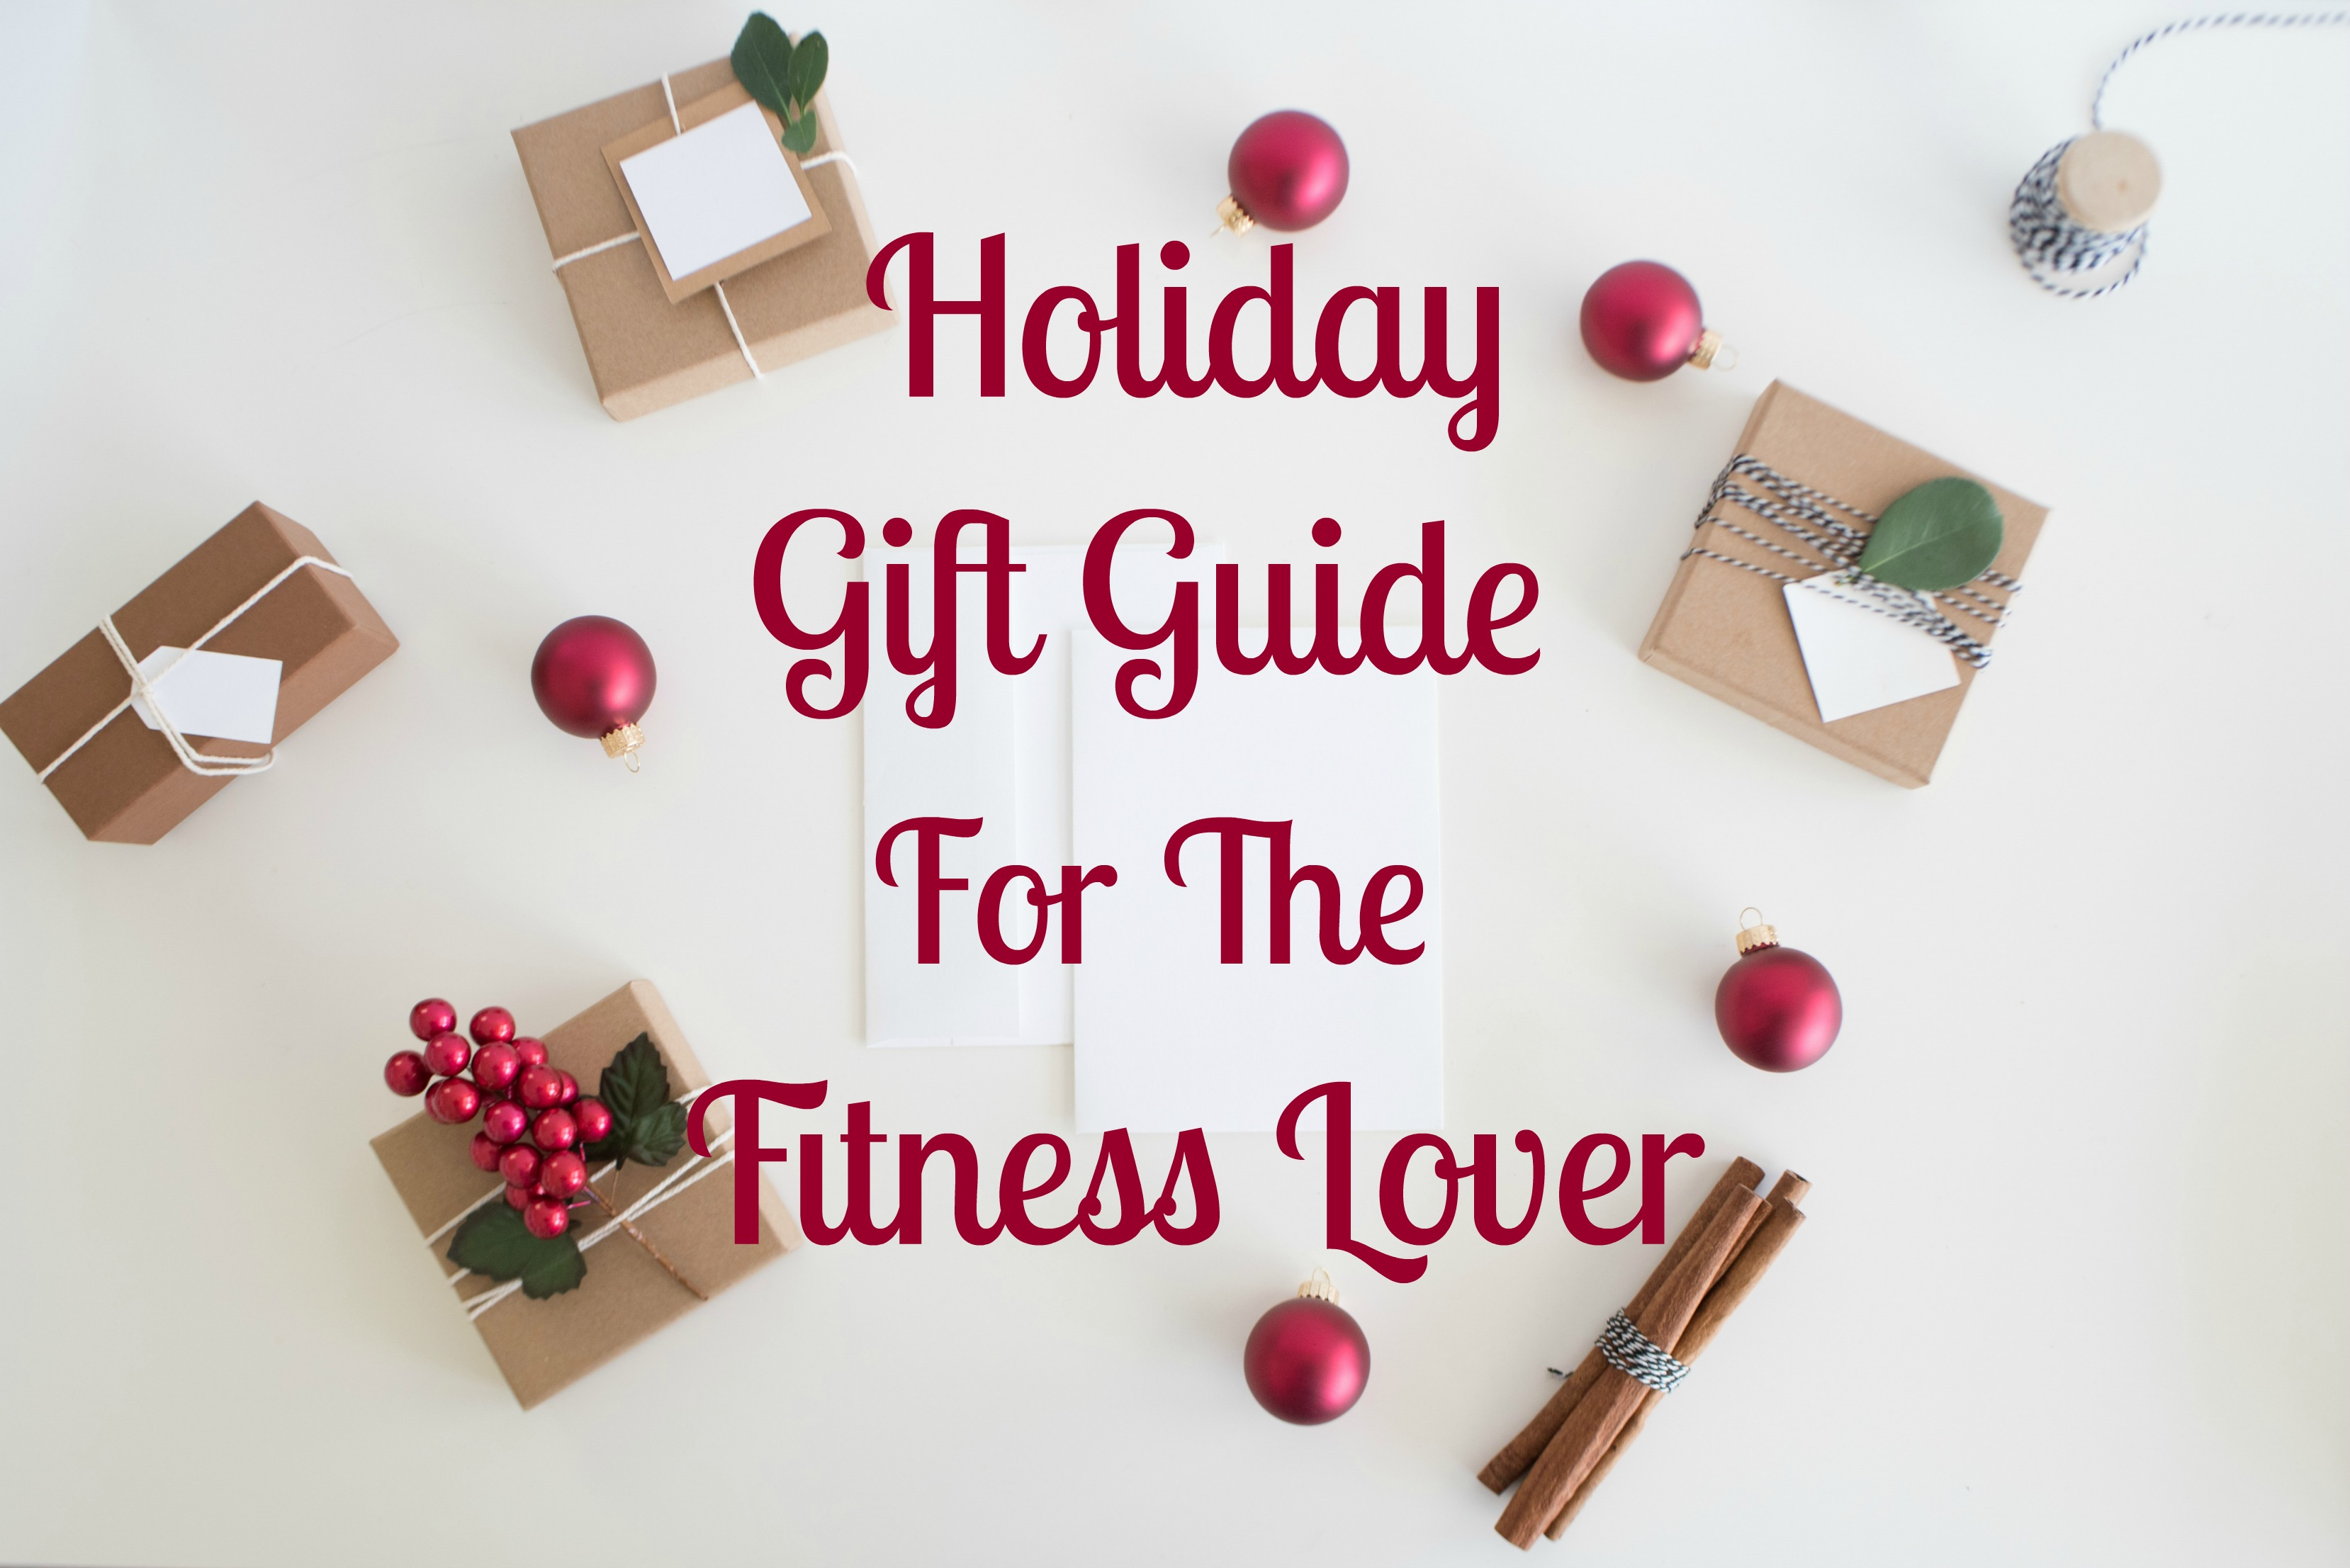 Christmas for the Fitness Lover